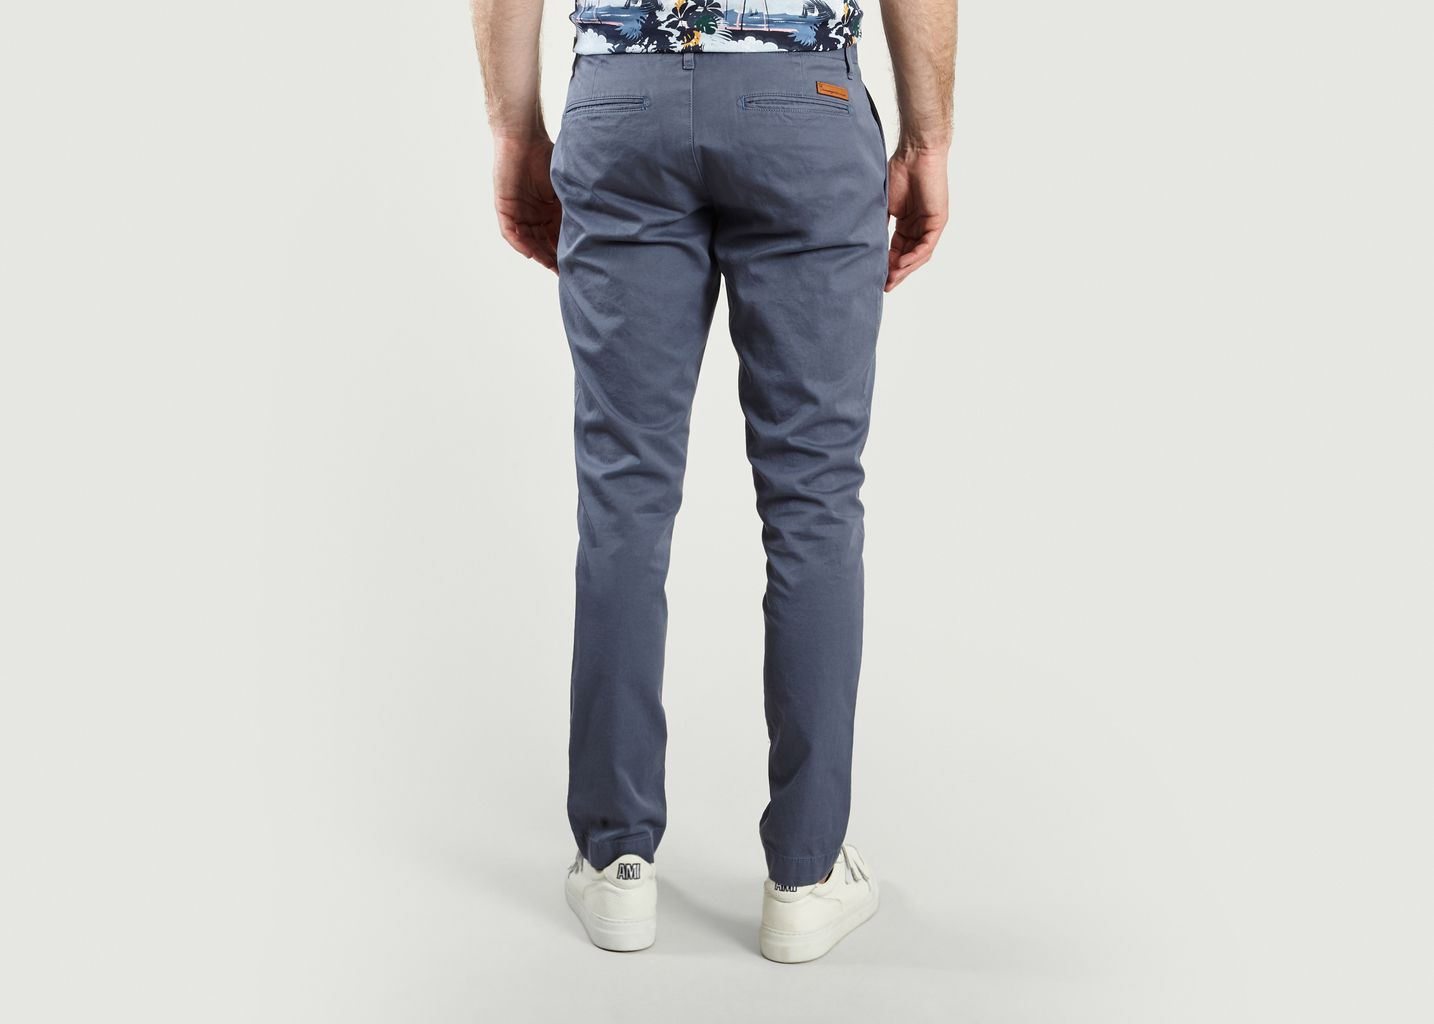 Pantalon Chino - Knowledge Cotton Apparel